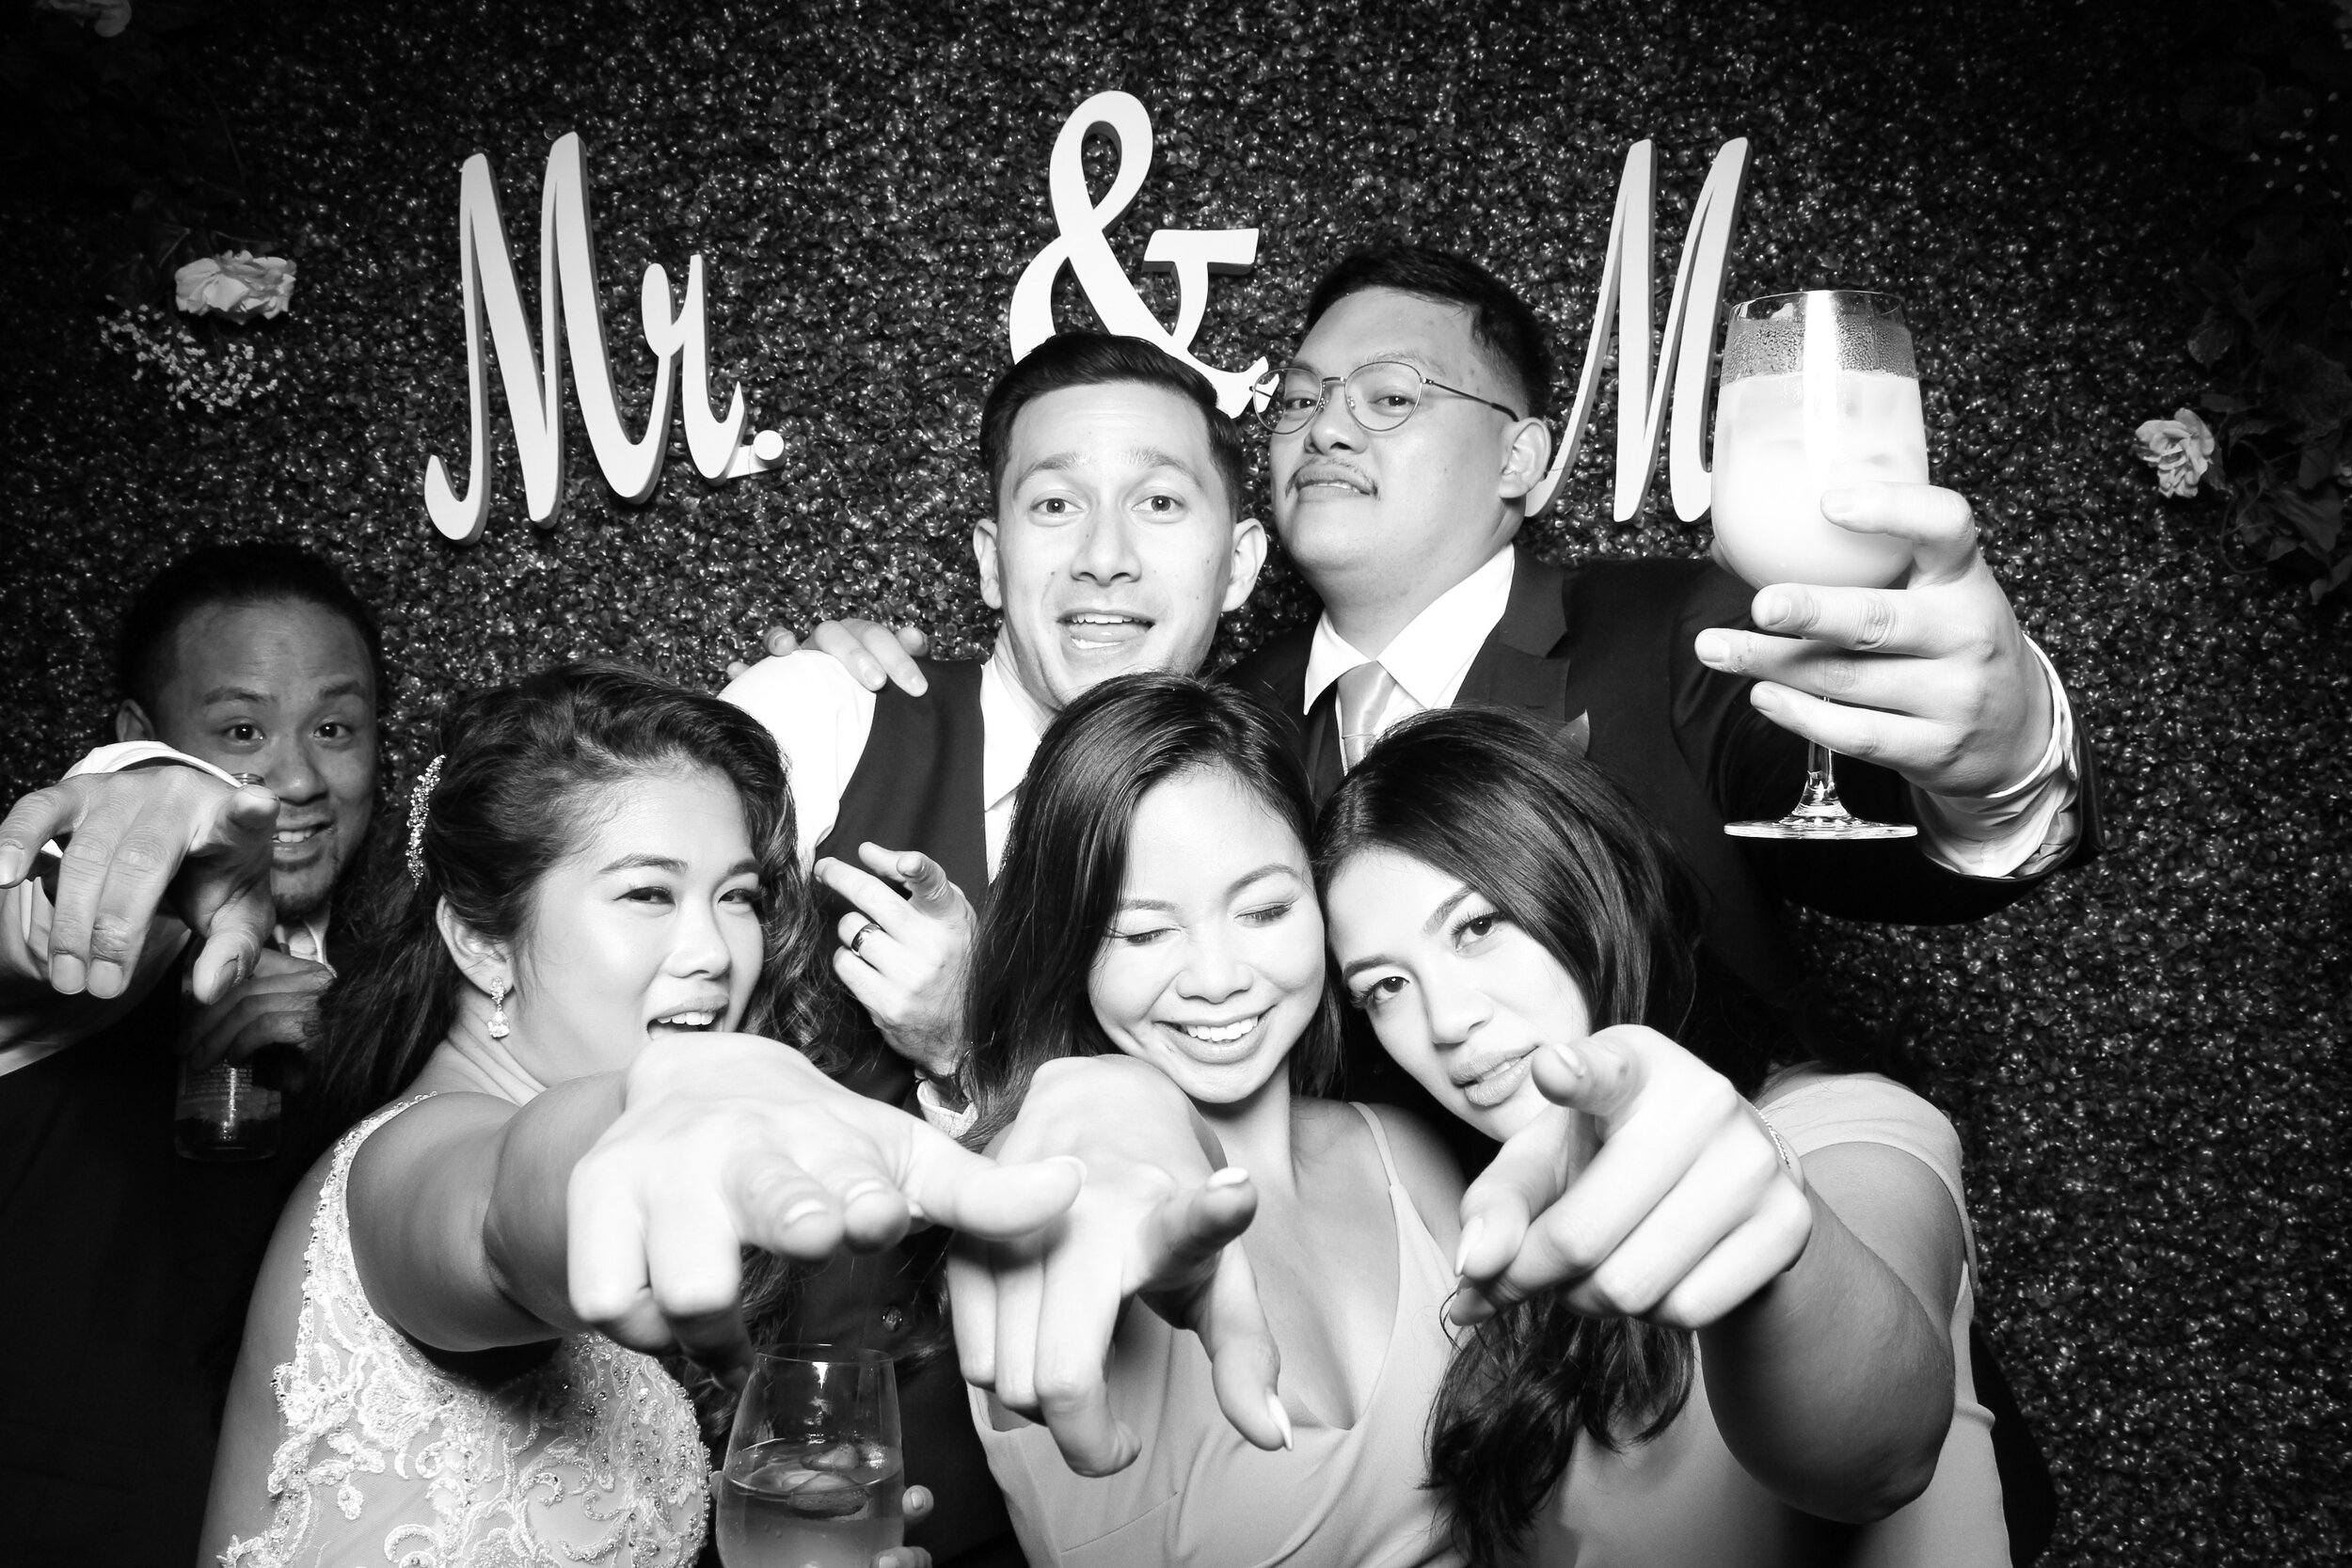 Green_Hedge_Ivy_Wall_Backdrop_Photo_Booth_Rental_Chicago_21.jpg